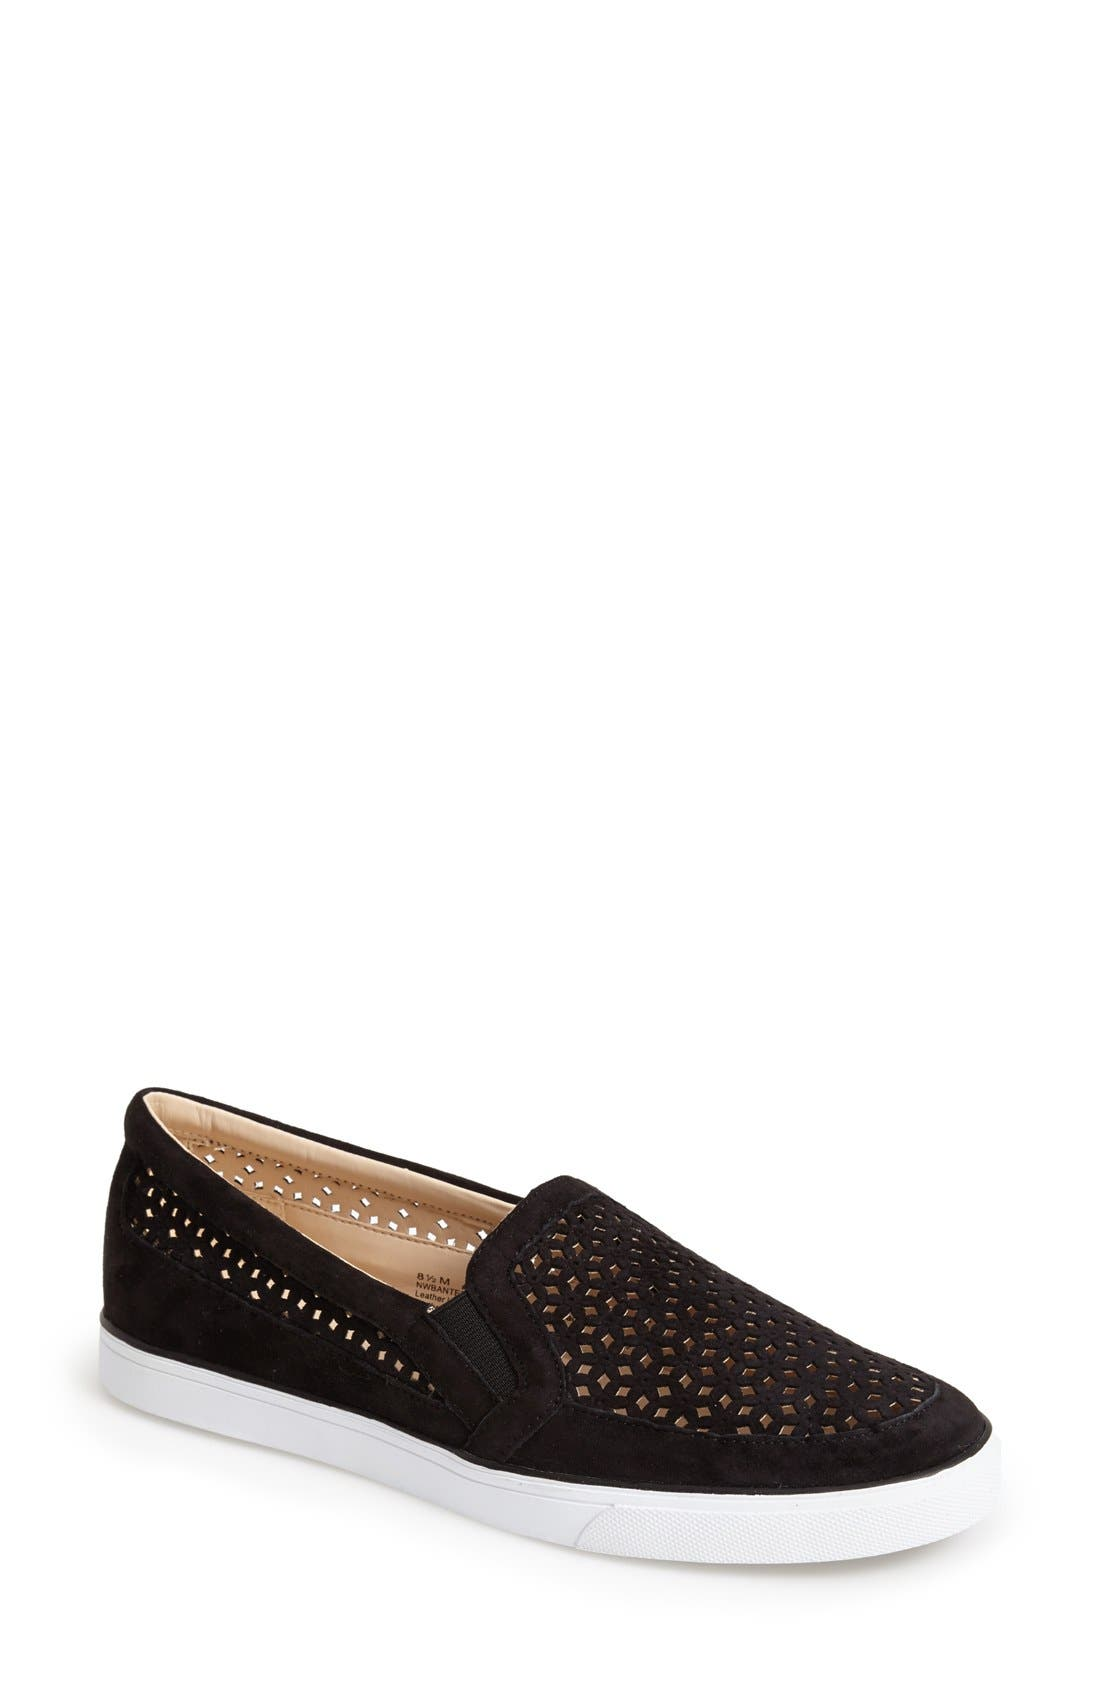 Main Image - Nine West 'Banter' Perforated Suede Slip-On Sneaker (Women)